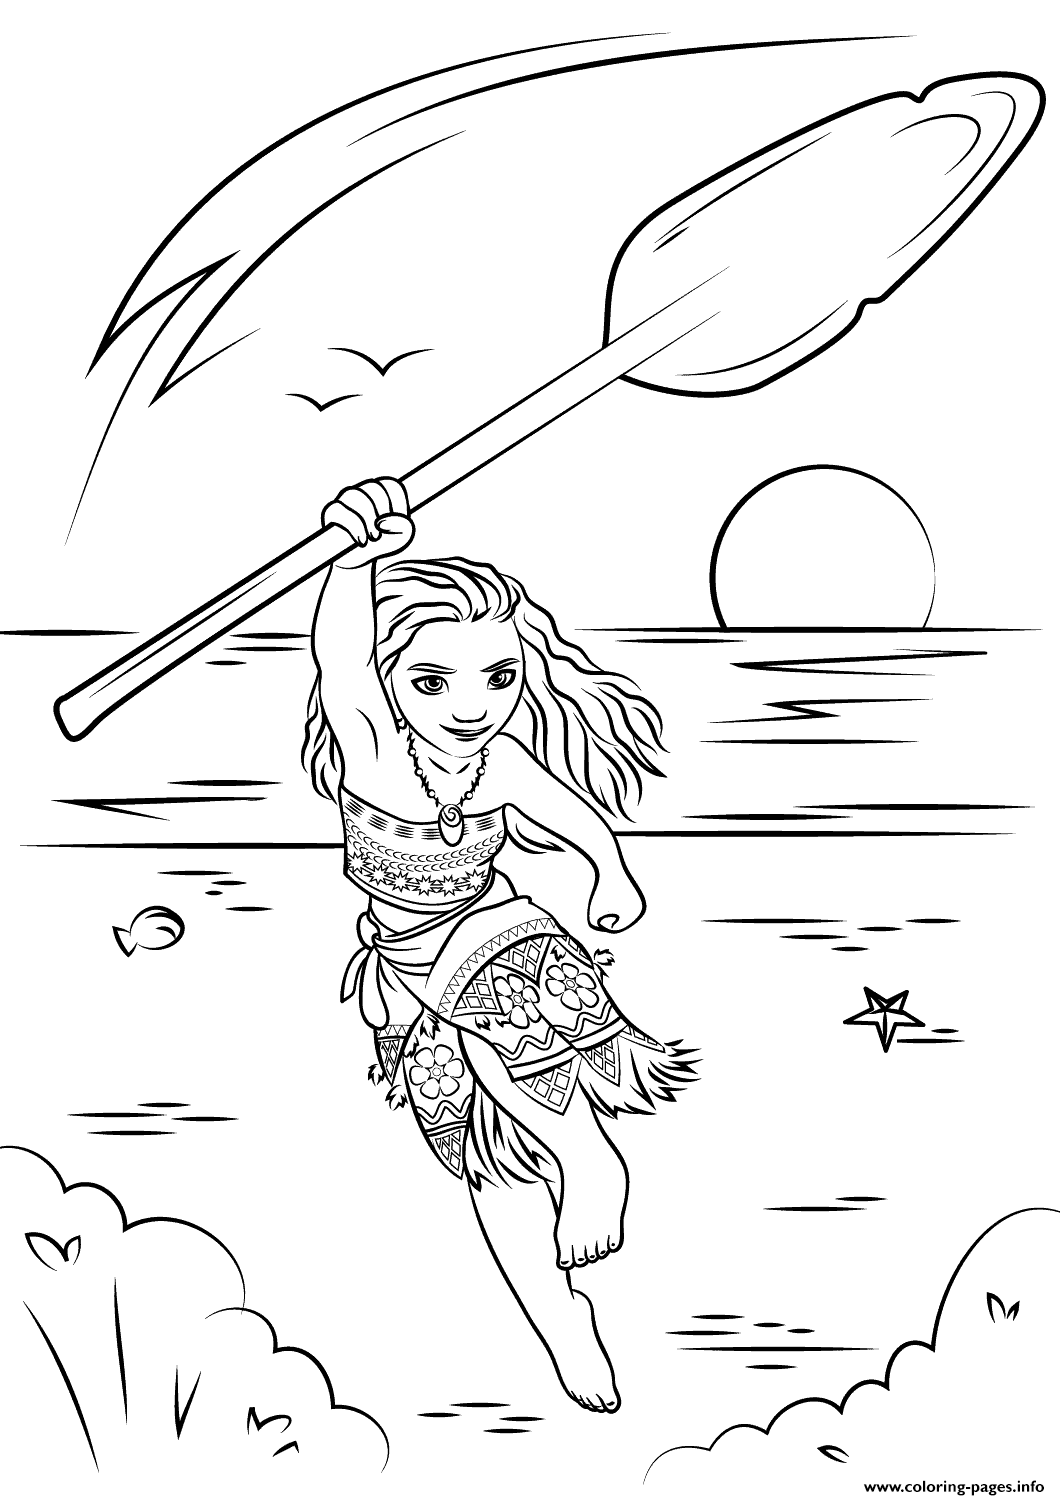 Moana Disney Coloring Pages